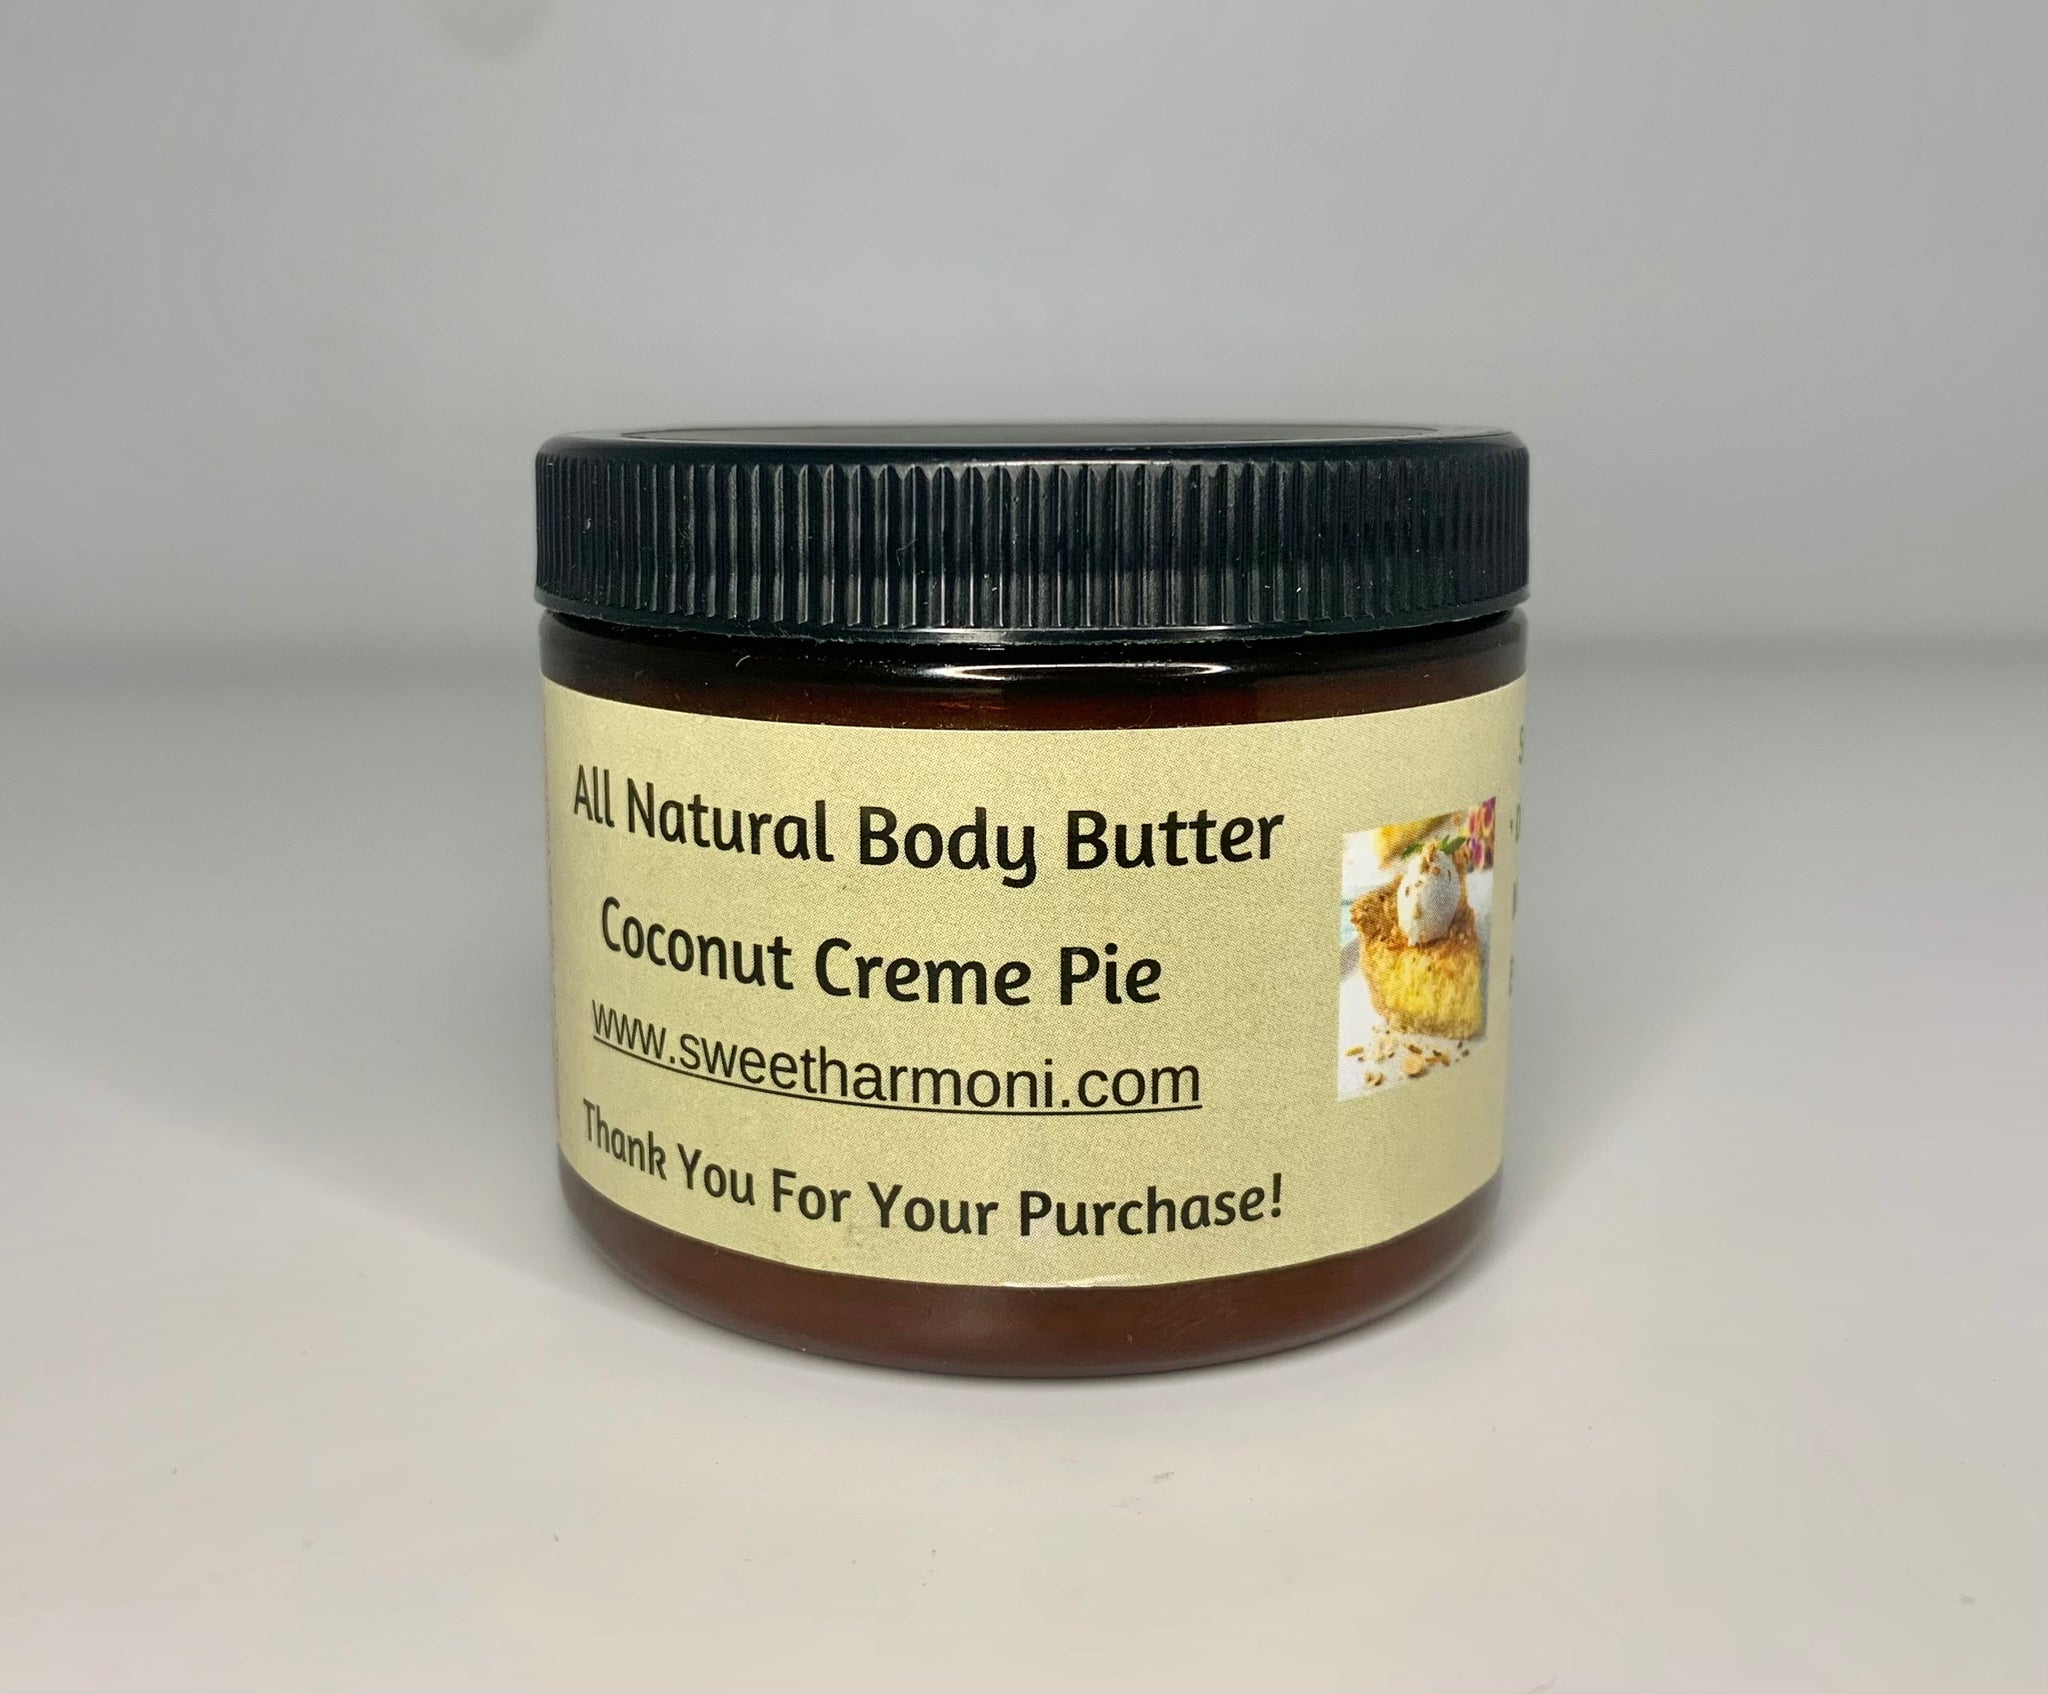 Coconut Creme Pie Body Butter